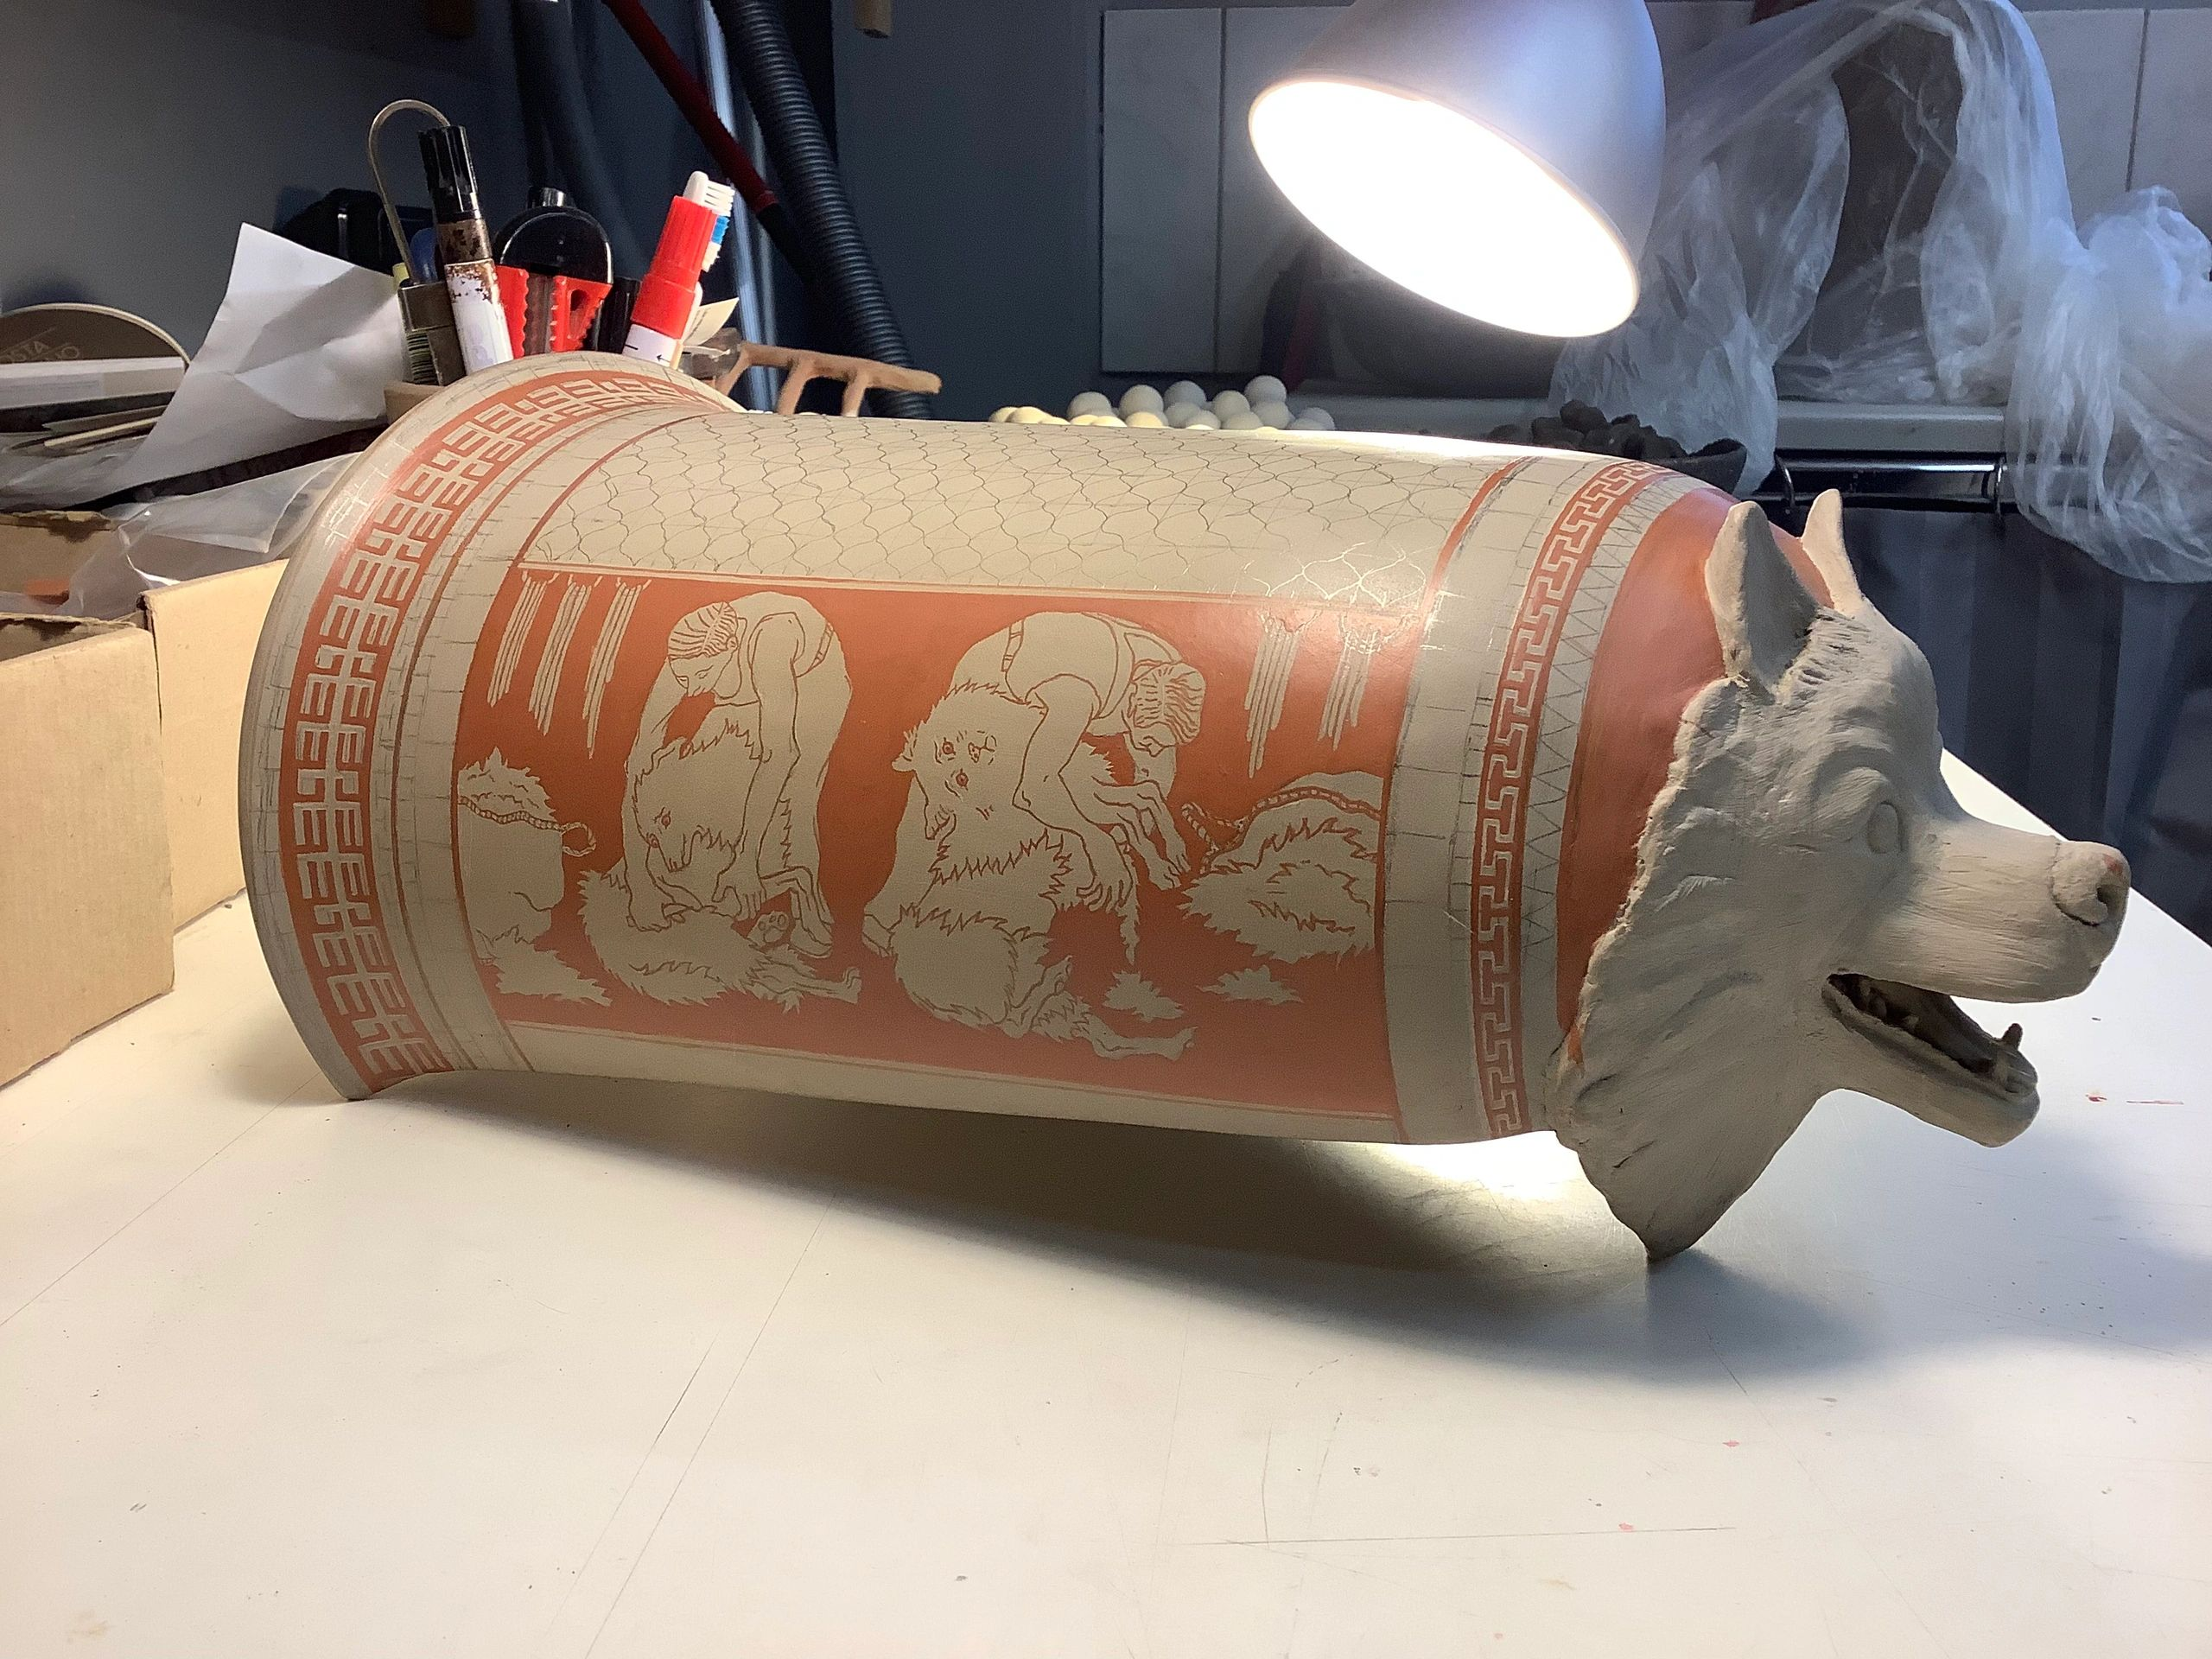 Salish-dog Epinetron made at Thetis Authentics (Athens). Images designed and painted by artist.